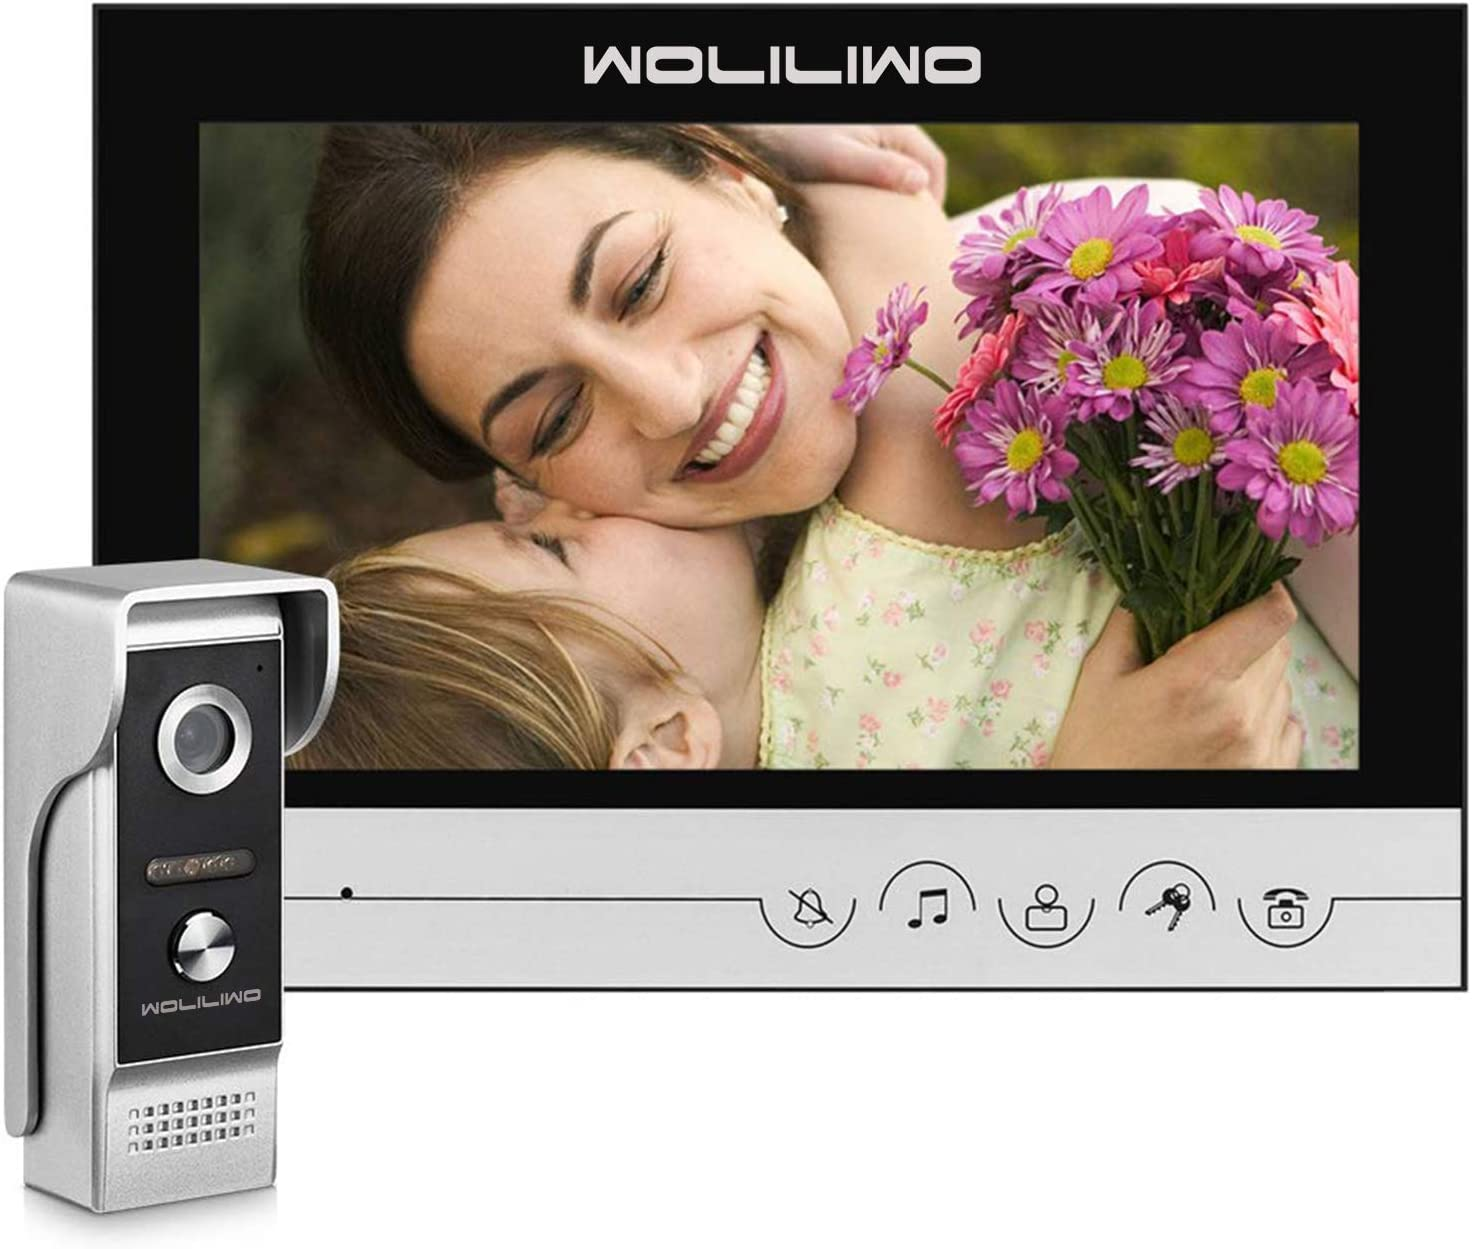 Video Doorbell with 9 Inches Monitor Wired Video Intercom Doorbell Phone System Kit 1-Monitor 1-Camera Video Doorbells WOLILIWO for Home Office Apartment